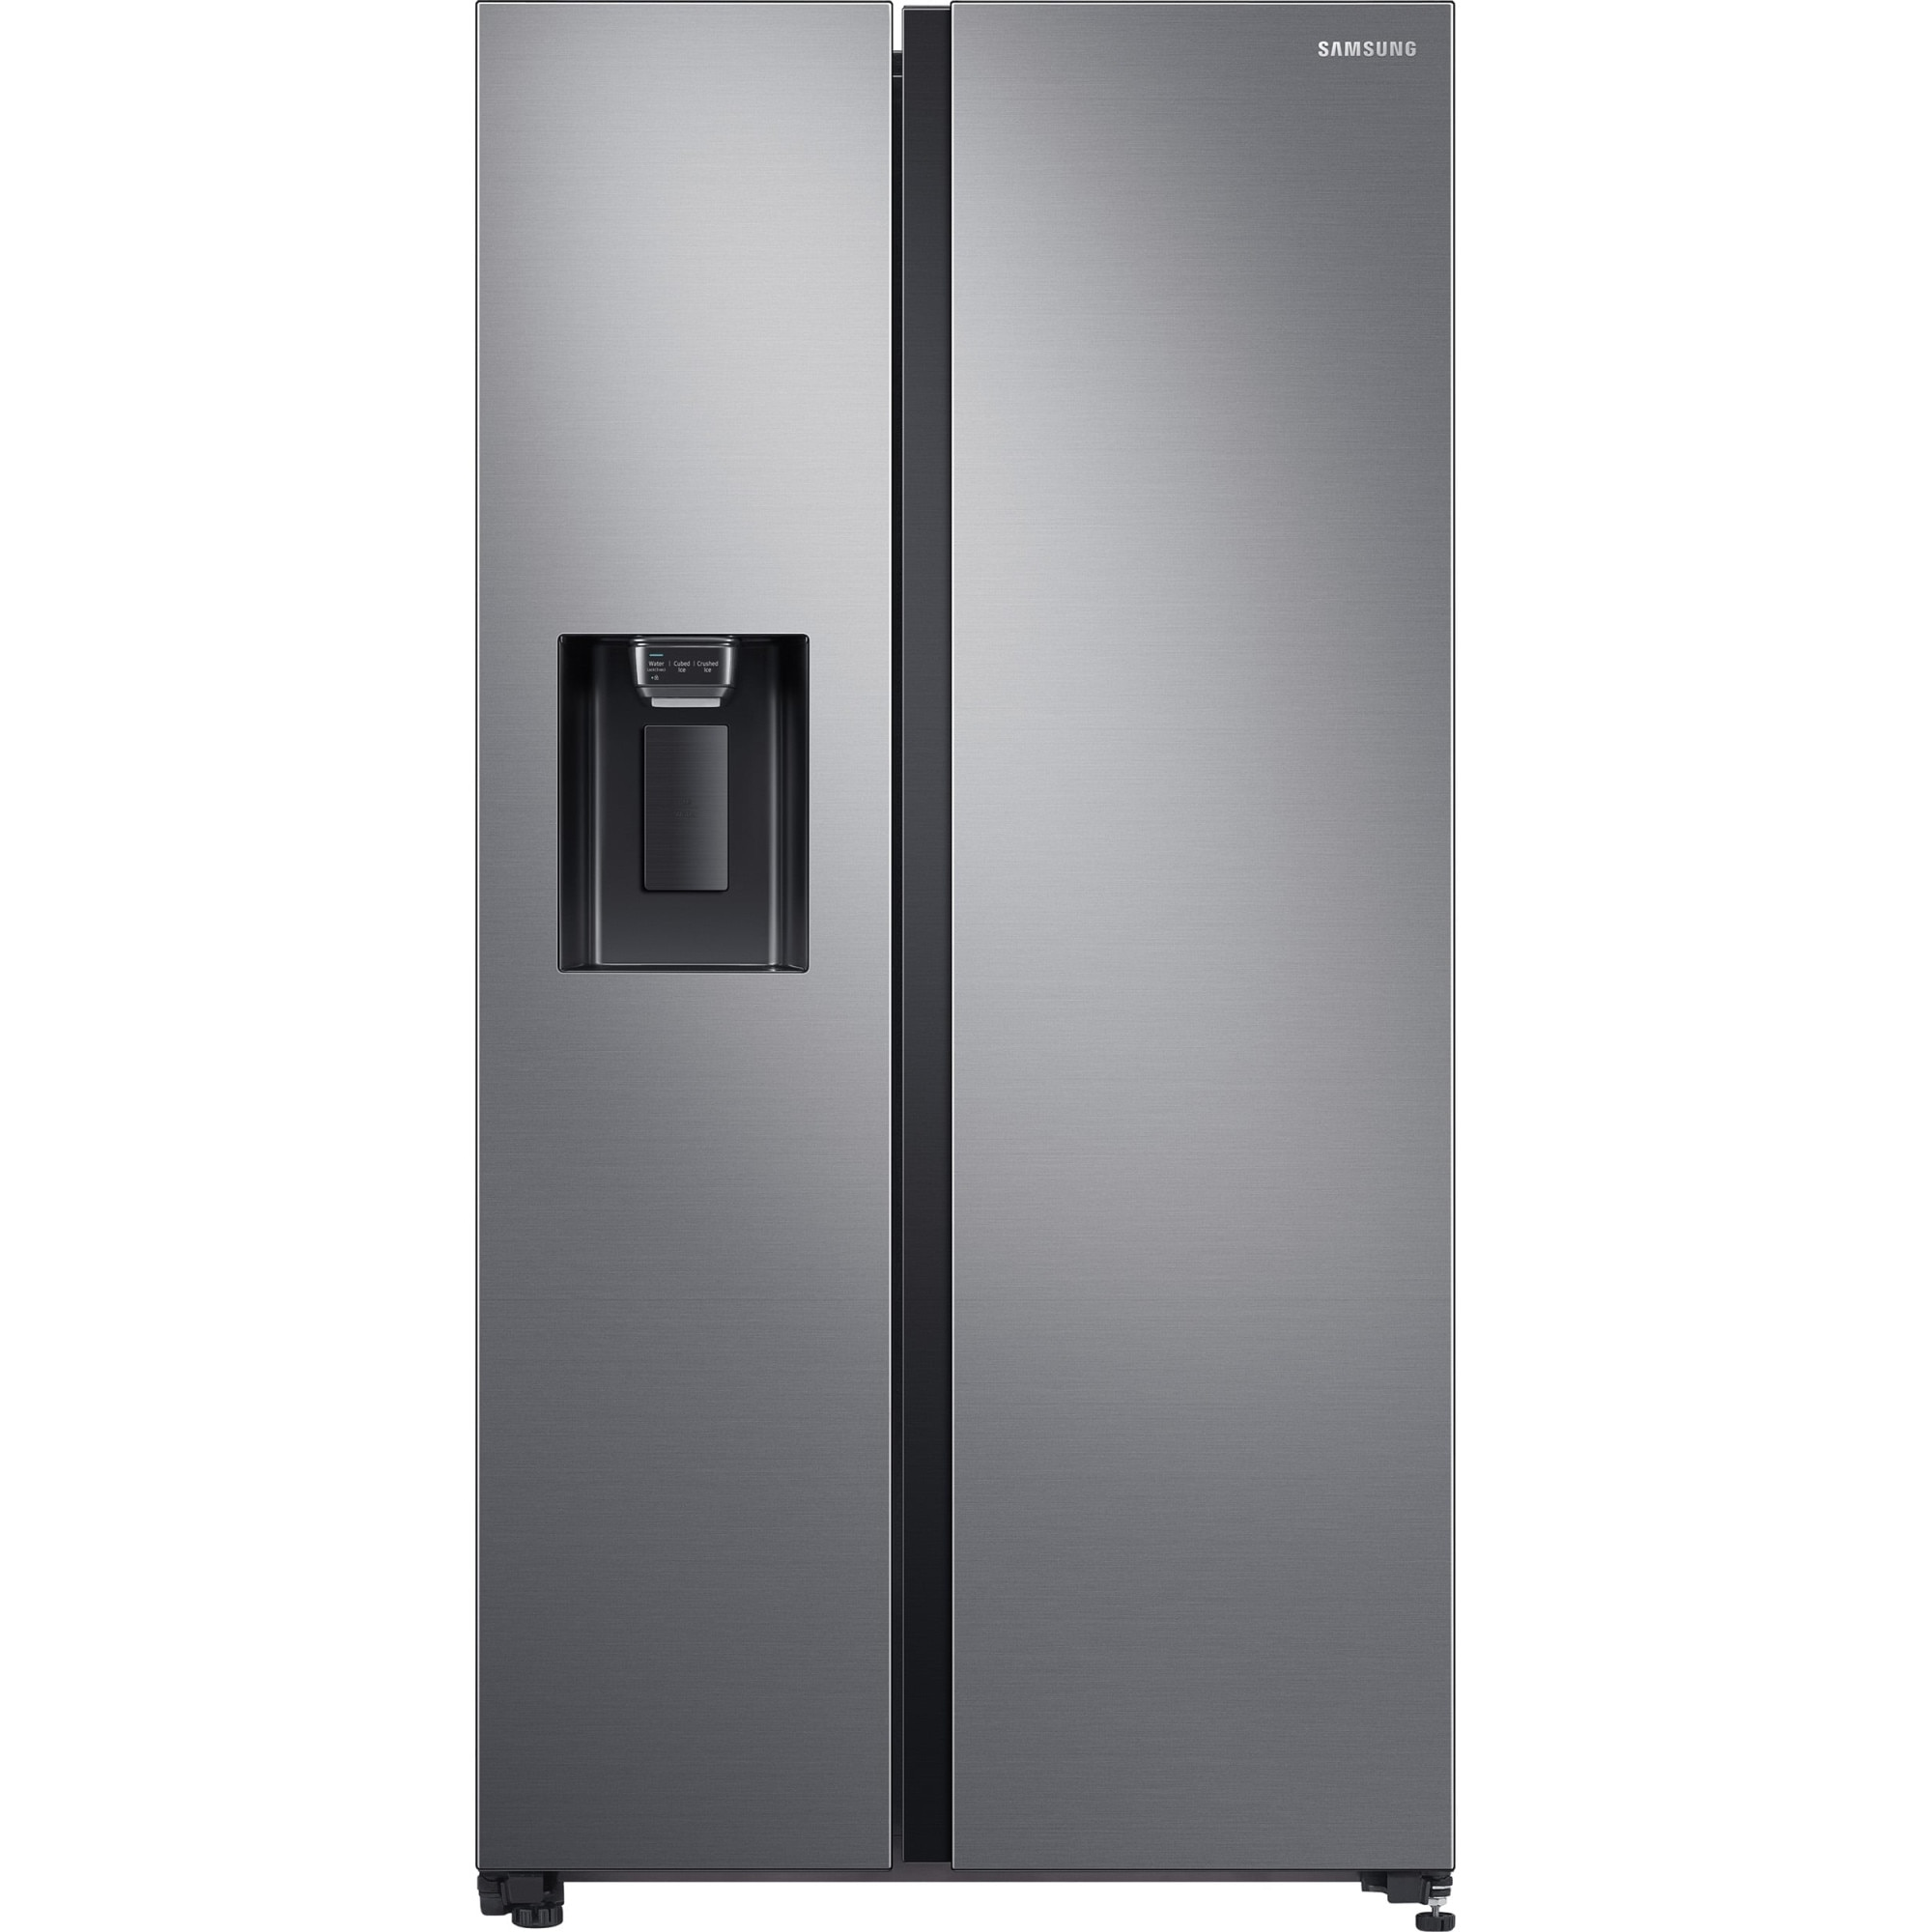 Fotografie Side By Side Samsung RS64R5302M9/EO, 617 l, Clasa F, Full No Frost, All around cooling, Tehnologie Space Max, Non-Plumbing, Dozator apa, Argintiu